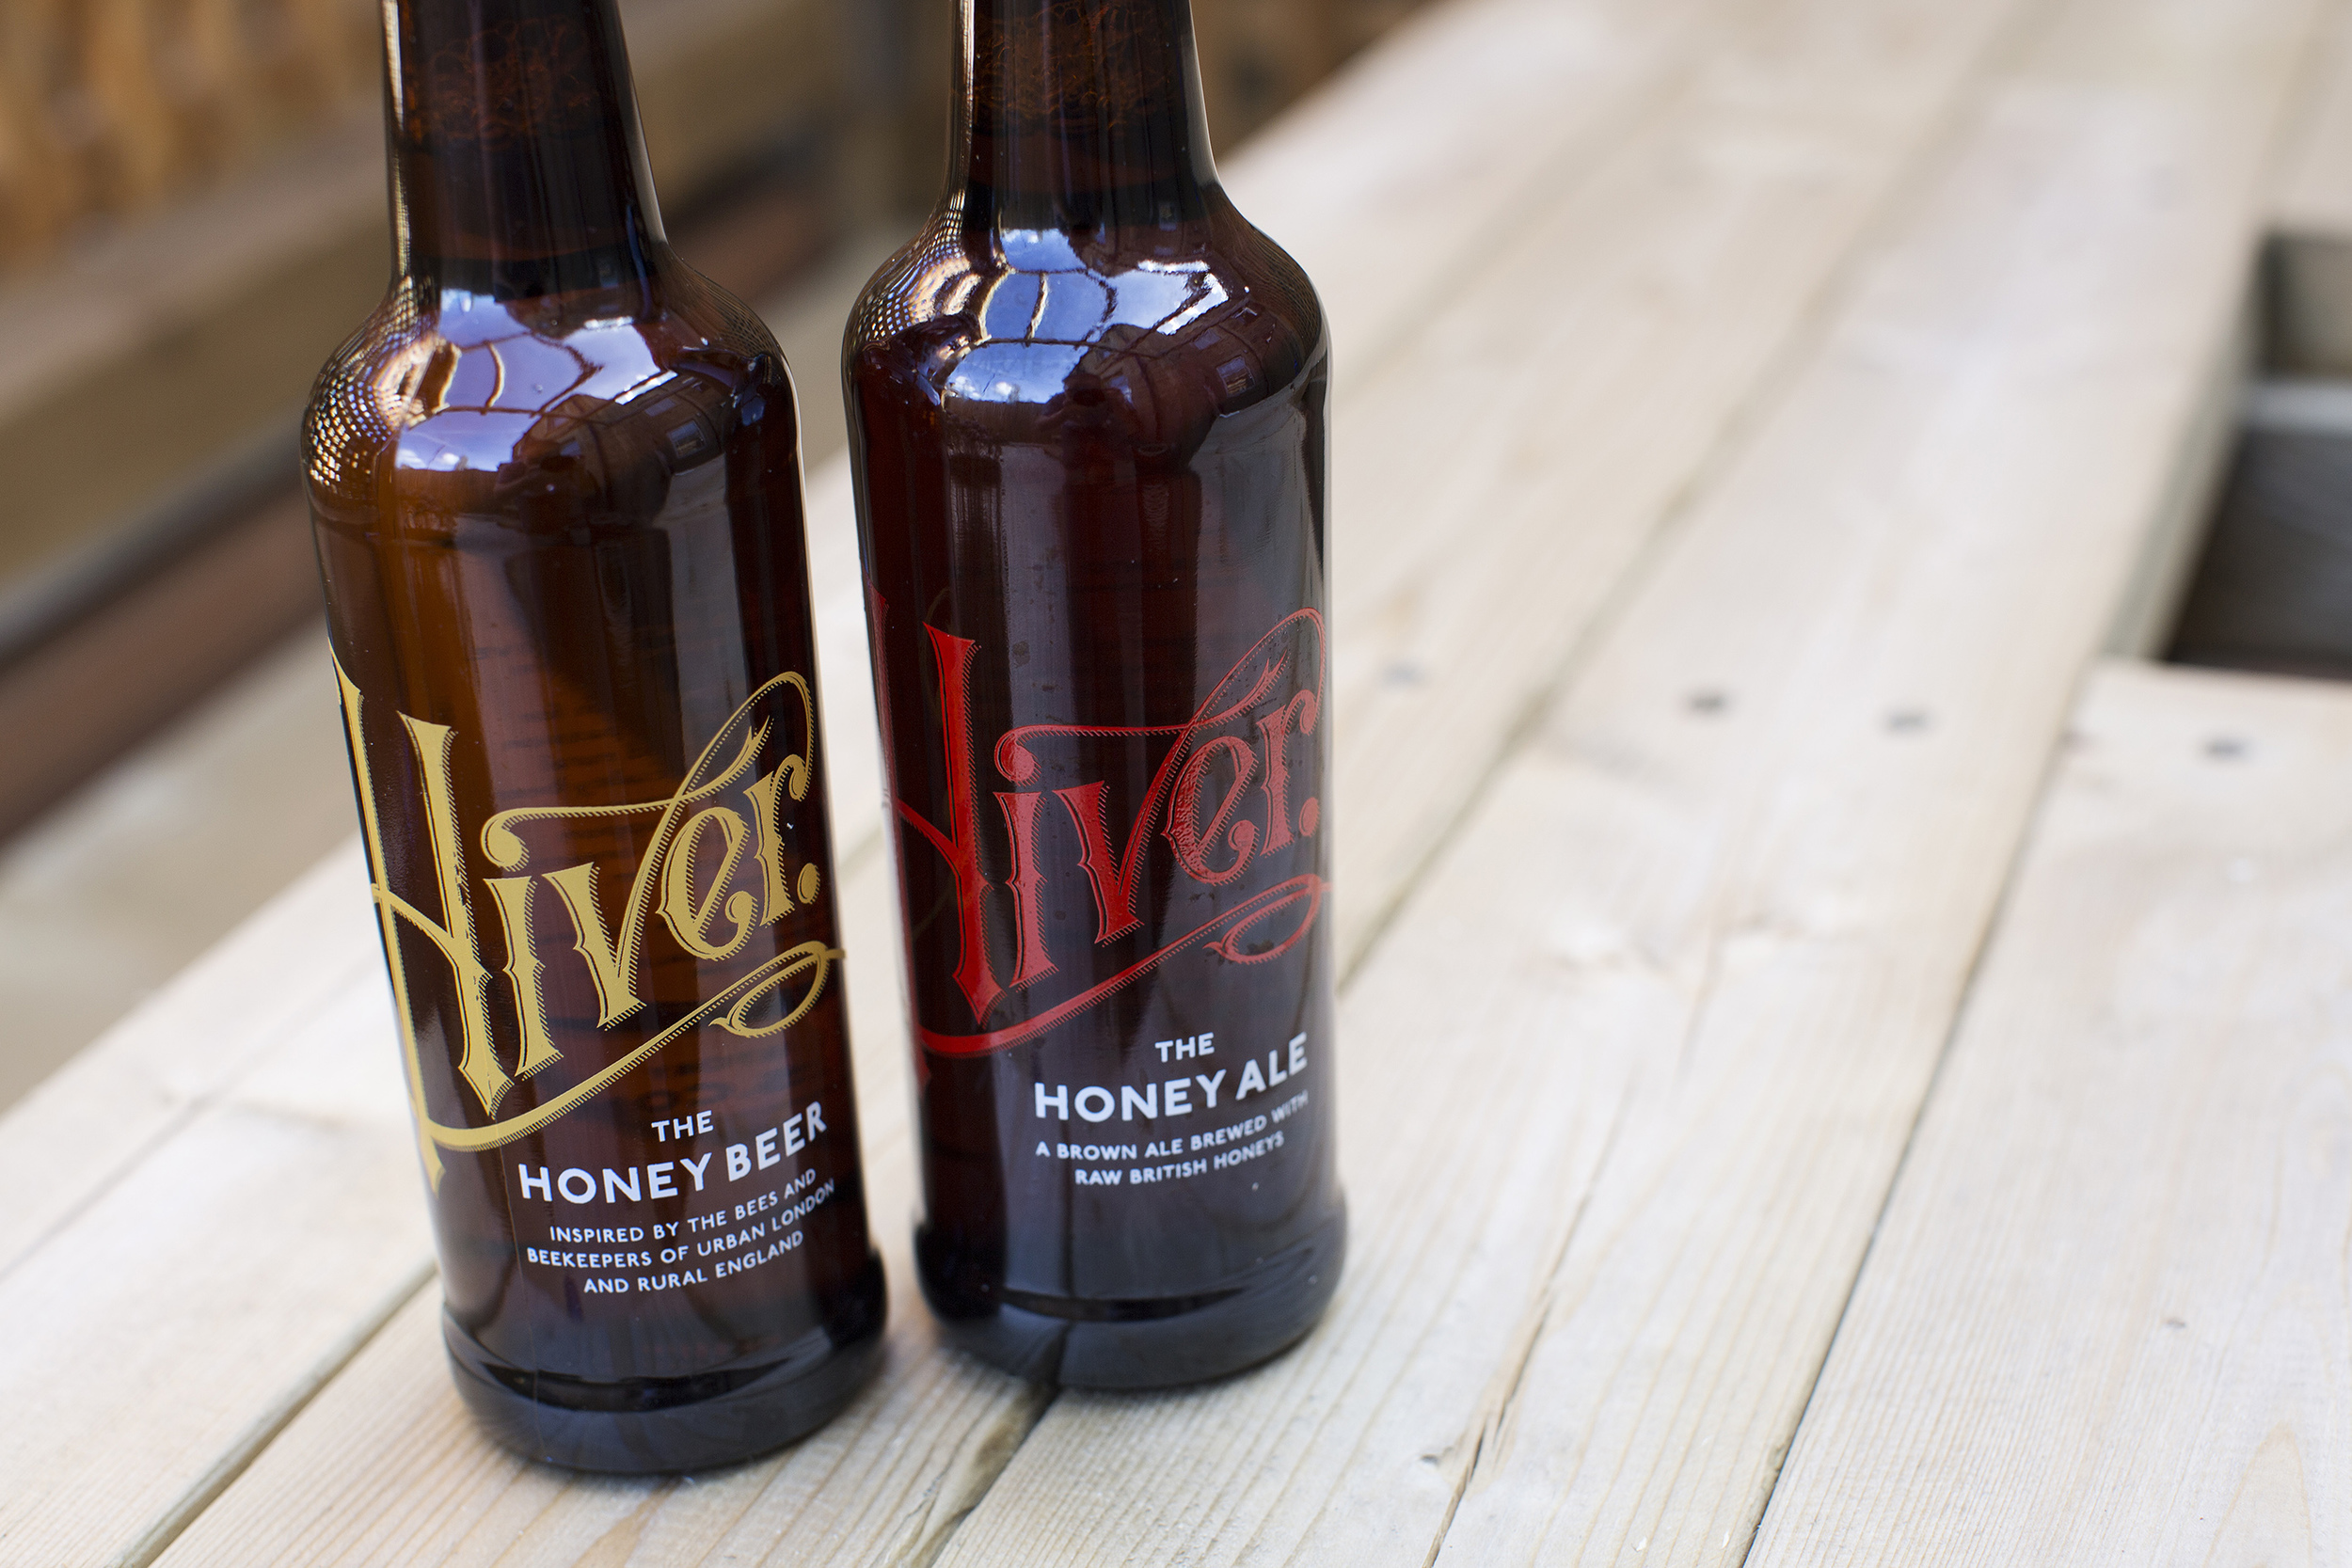 The core Hiver range: The Honey Beer and the Honey Ale